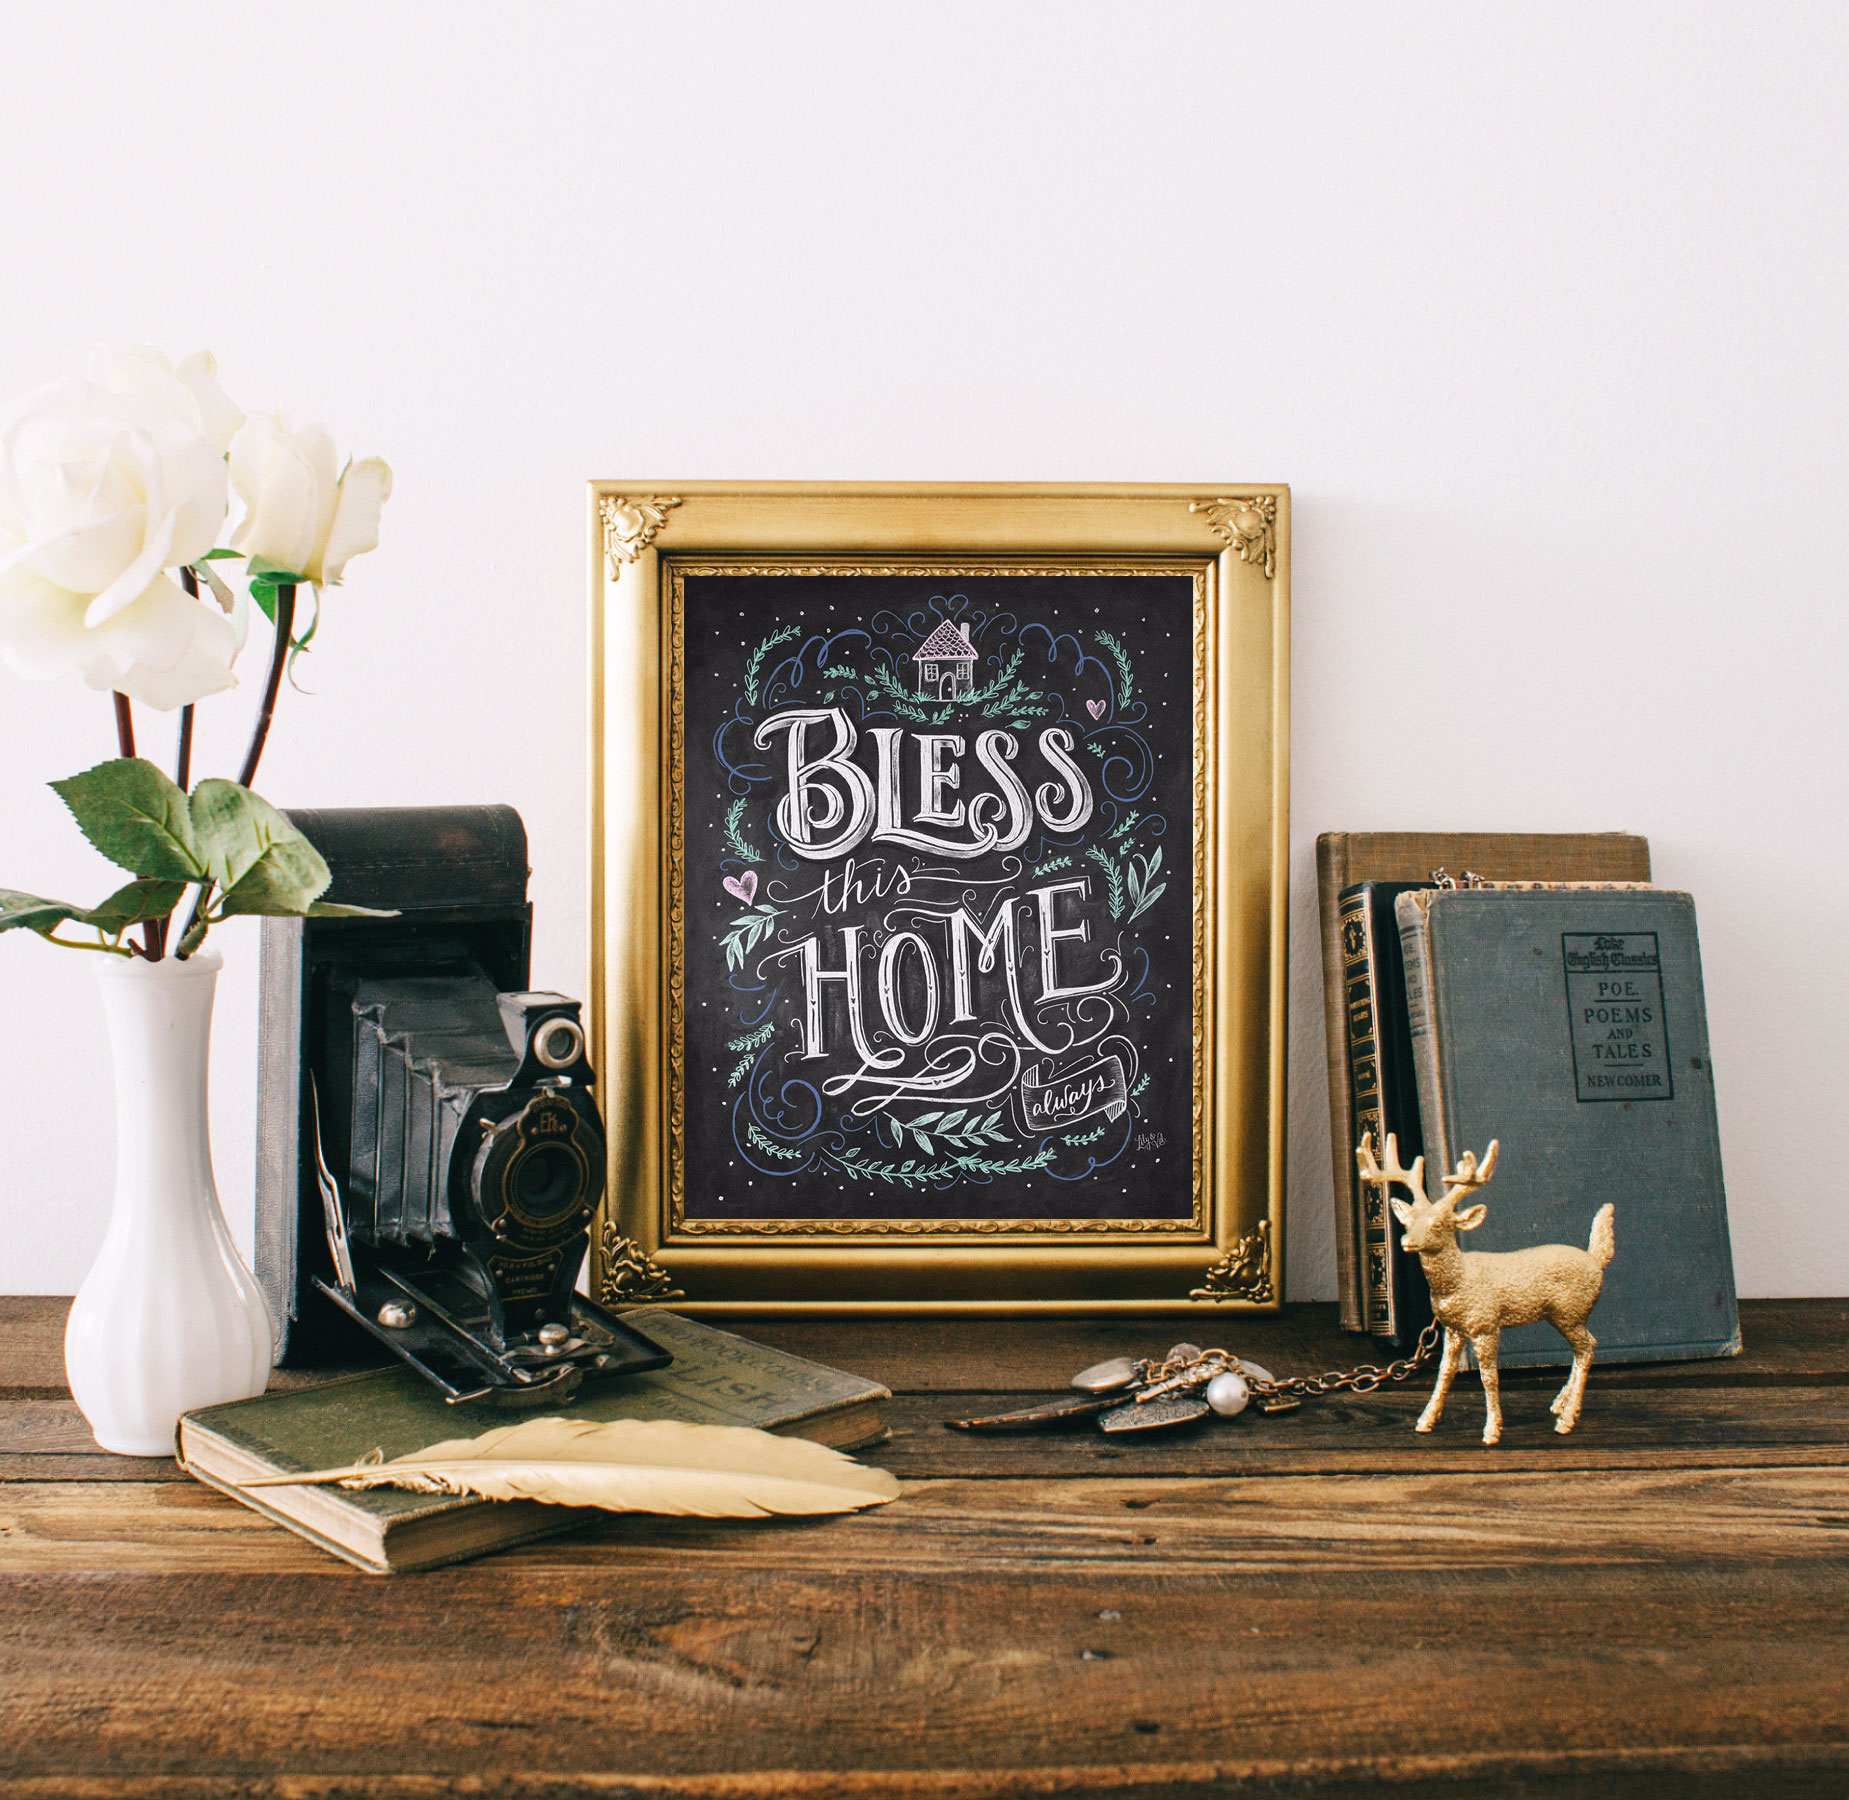 Bless This Home Chalk Art Print Hand-drawn by Valerie McKeehan